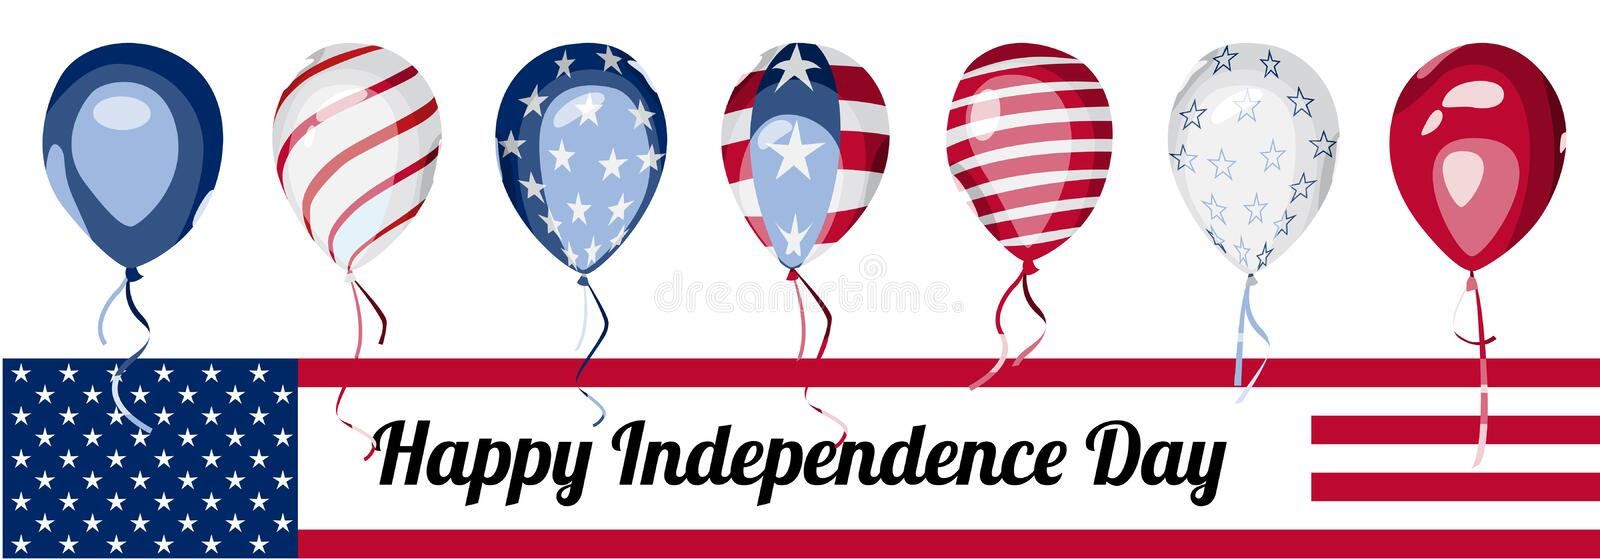 America independence day vector banner royalty free illustration